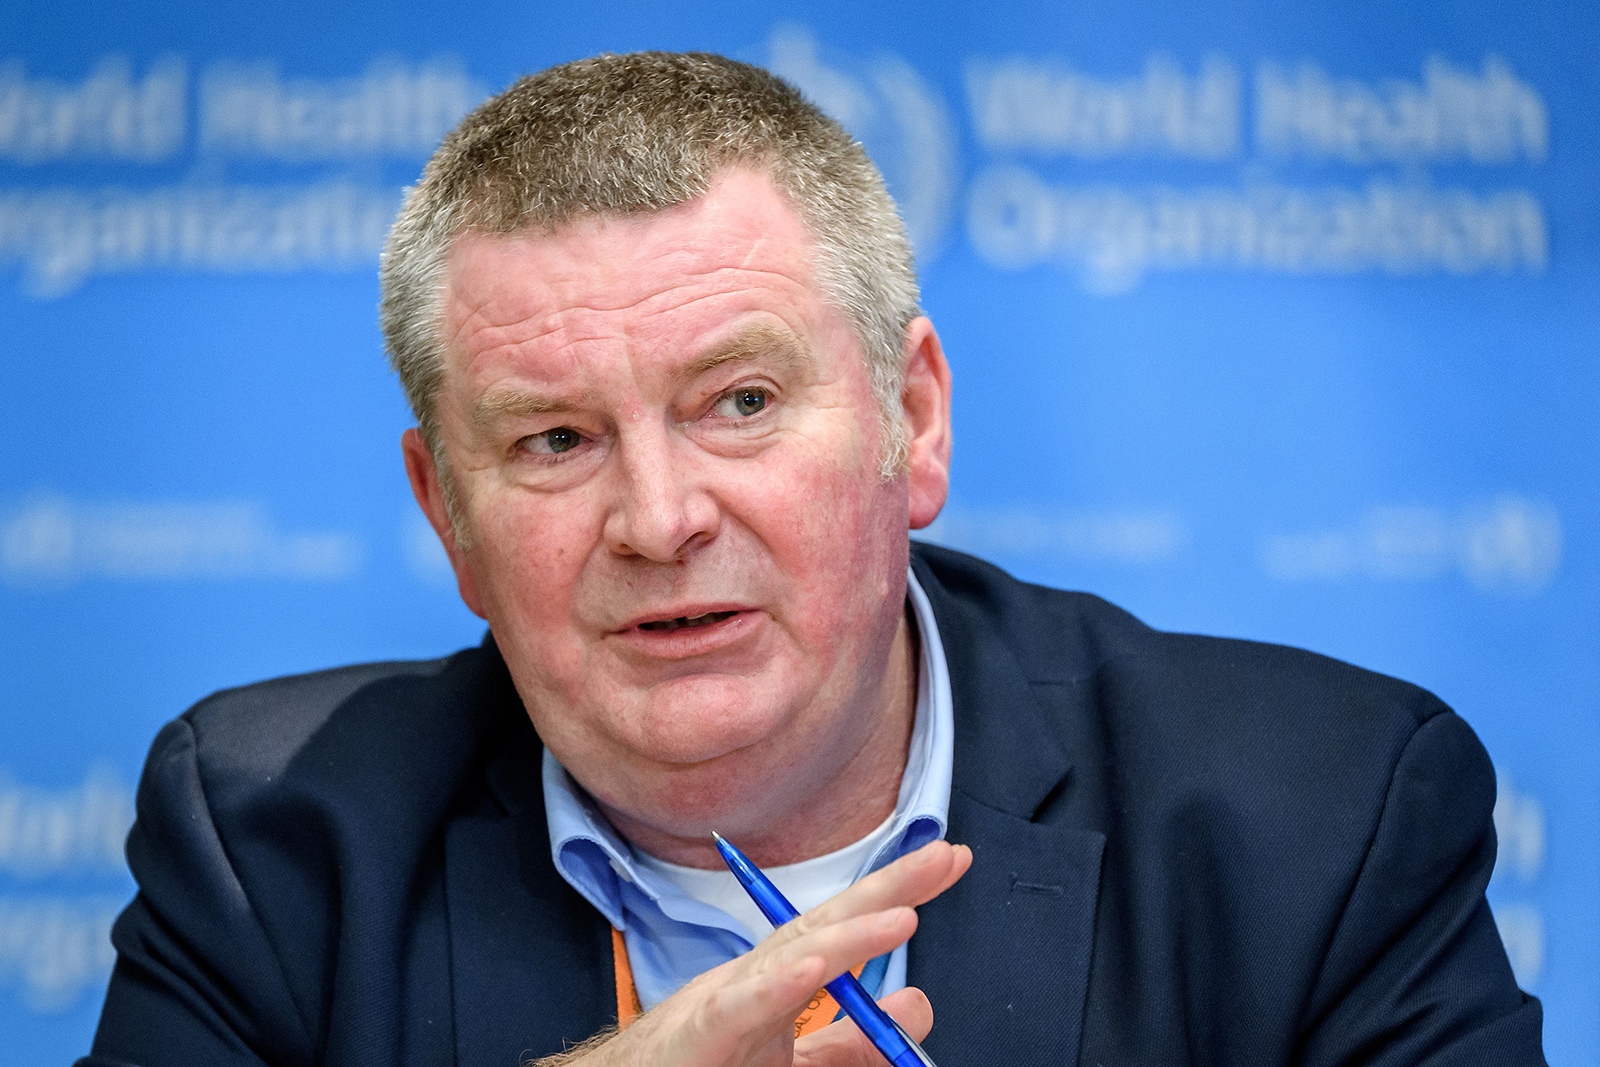 World Health Organization (WHO) Health Emergencies Programme Director Michael Ryan talks during a daily press briefing on COVID-19, at the WHO heardquarters in Geneva, Switzerland, on March 11.